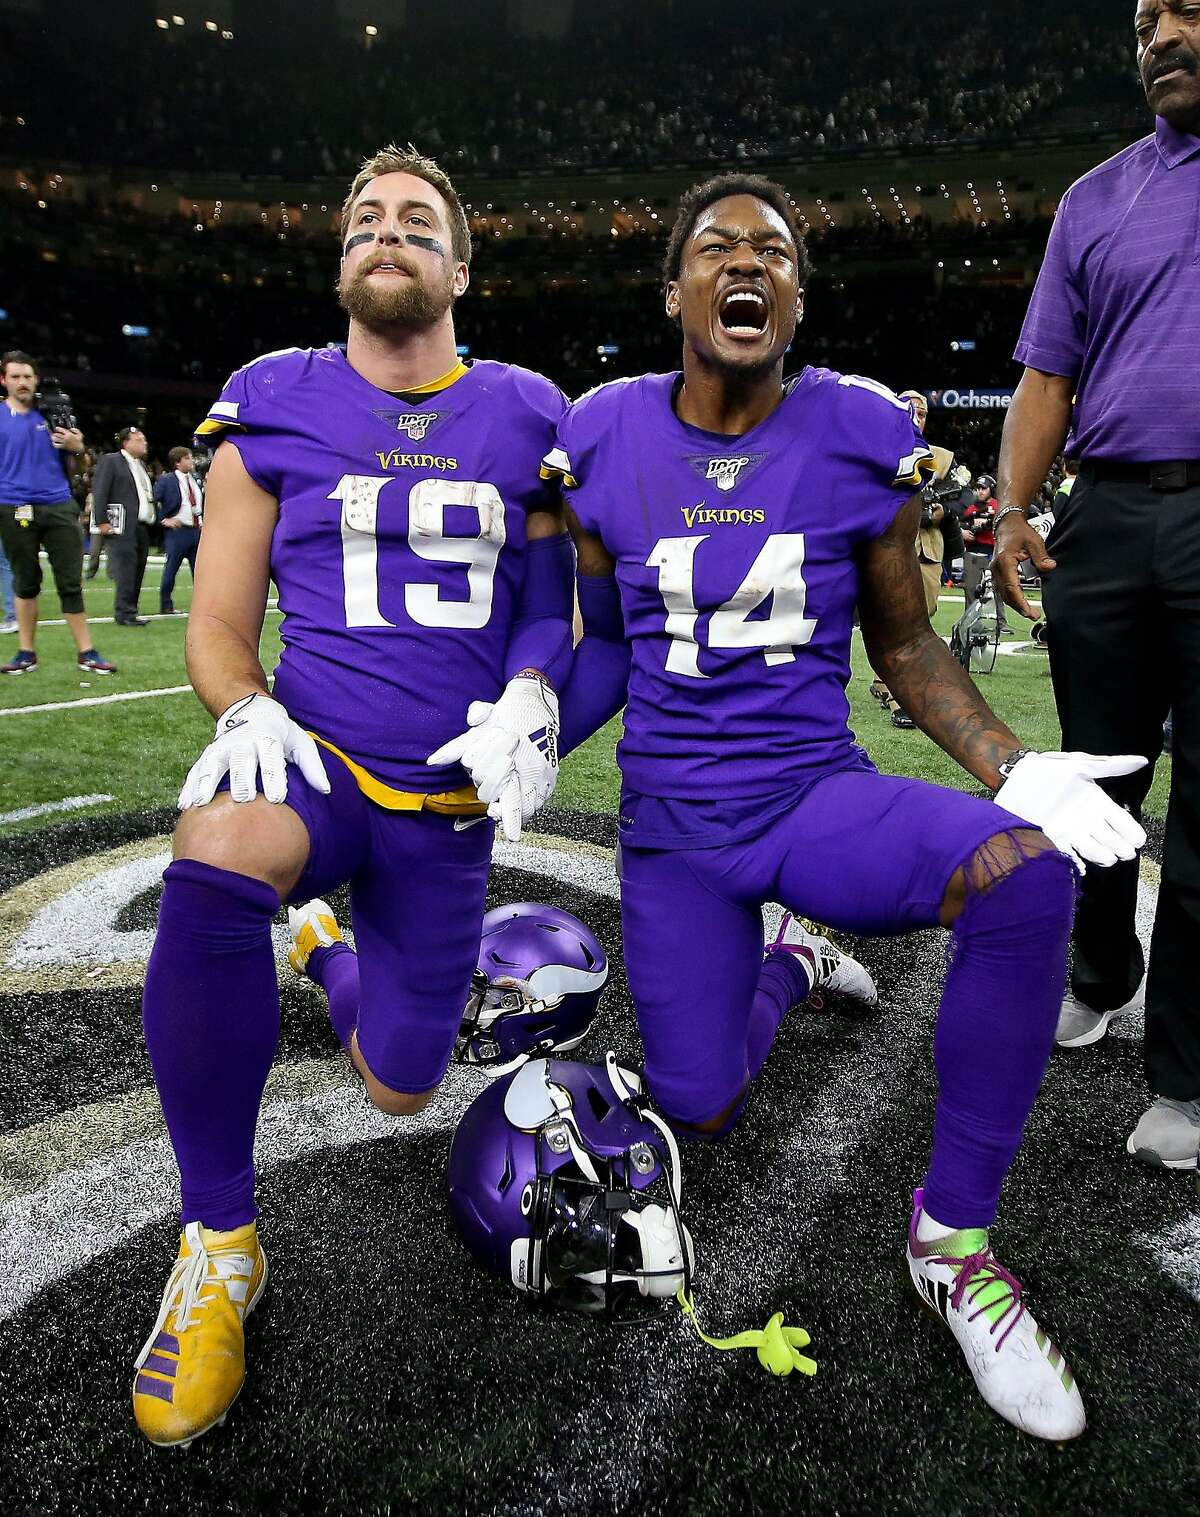 NEW ORLEANS, LOUISIANA - JANUARY 05: Adam Thielen #19 and Stefon Diggs #14 of the Minnesota Vikings celebrates after winning the NFC Wild Card Playoff game against the New Orleans Saints at Mercedes Benz Superdome on January 05, 2020 in New Orleans, Louisiana. (Photo by Jonathan Bachman/Getty Images)